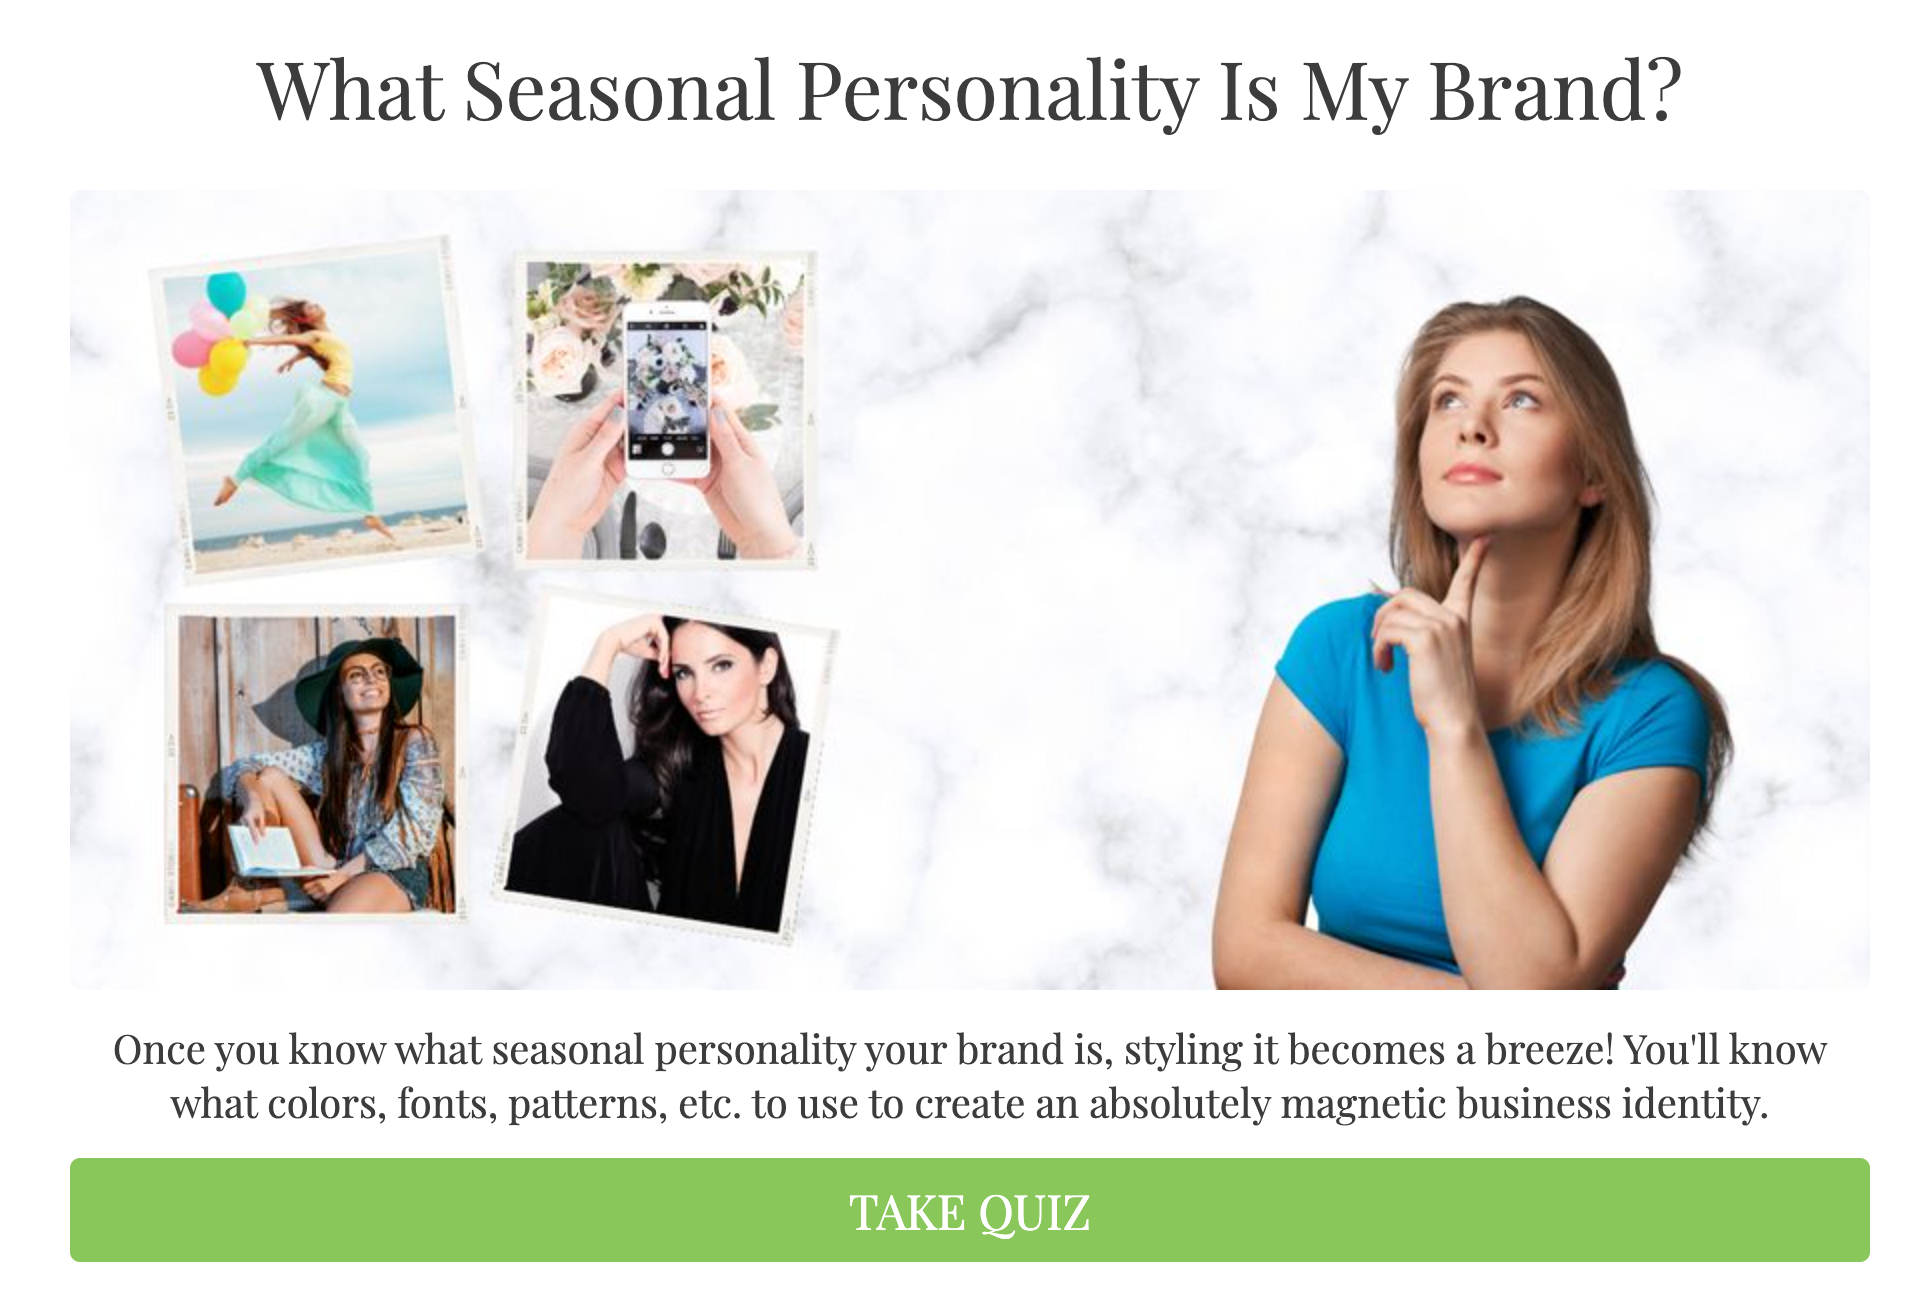 What Seasonal Personality Is My Brand?